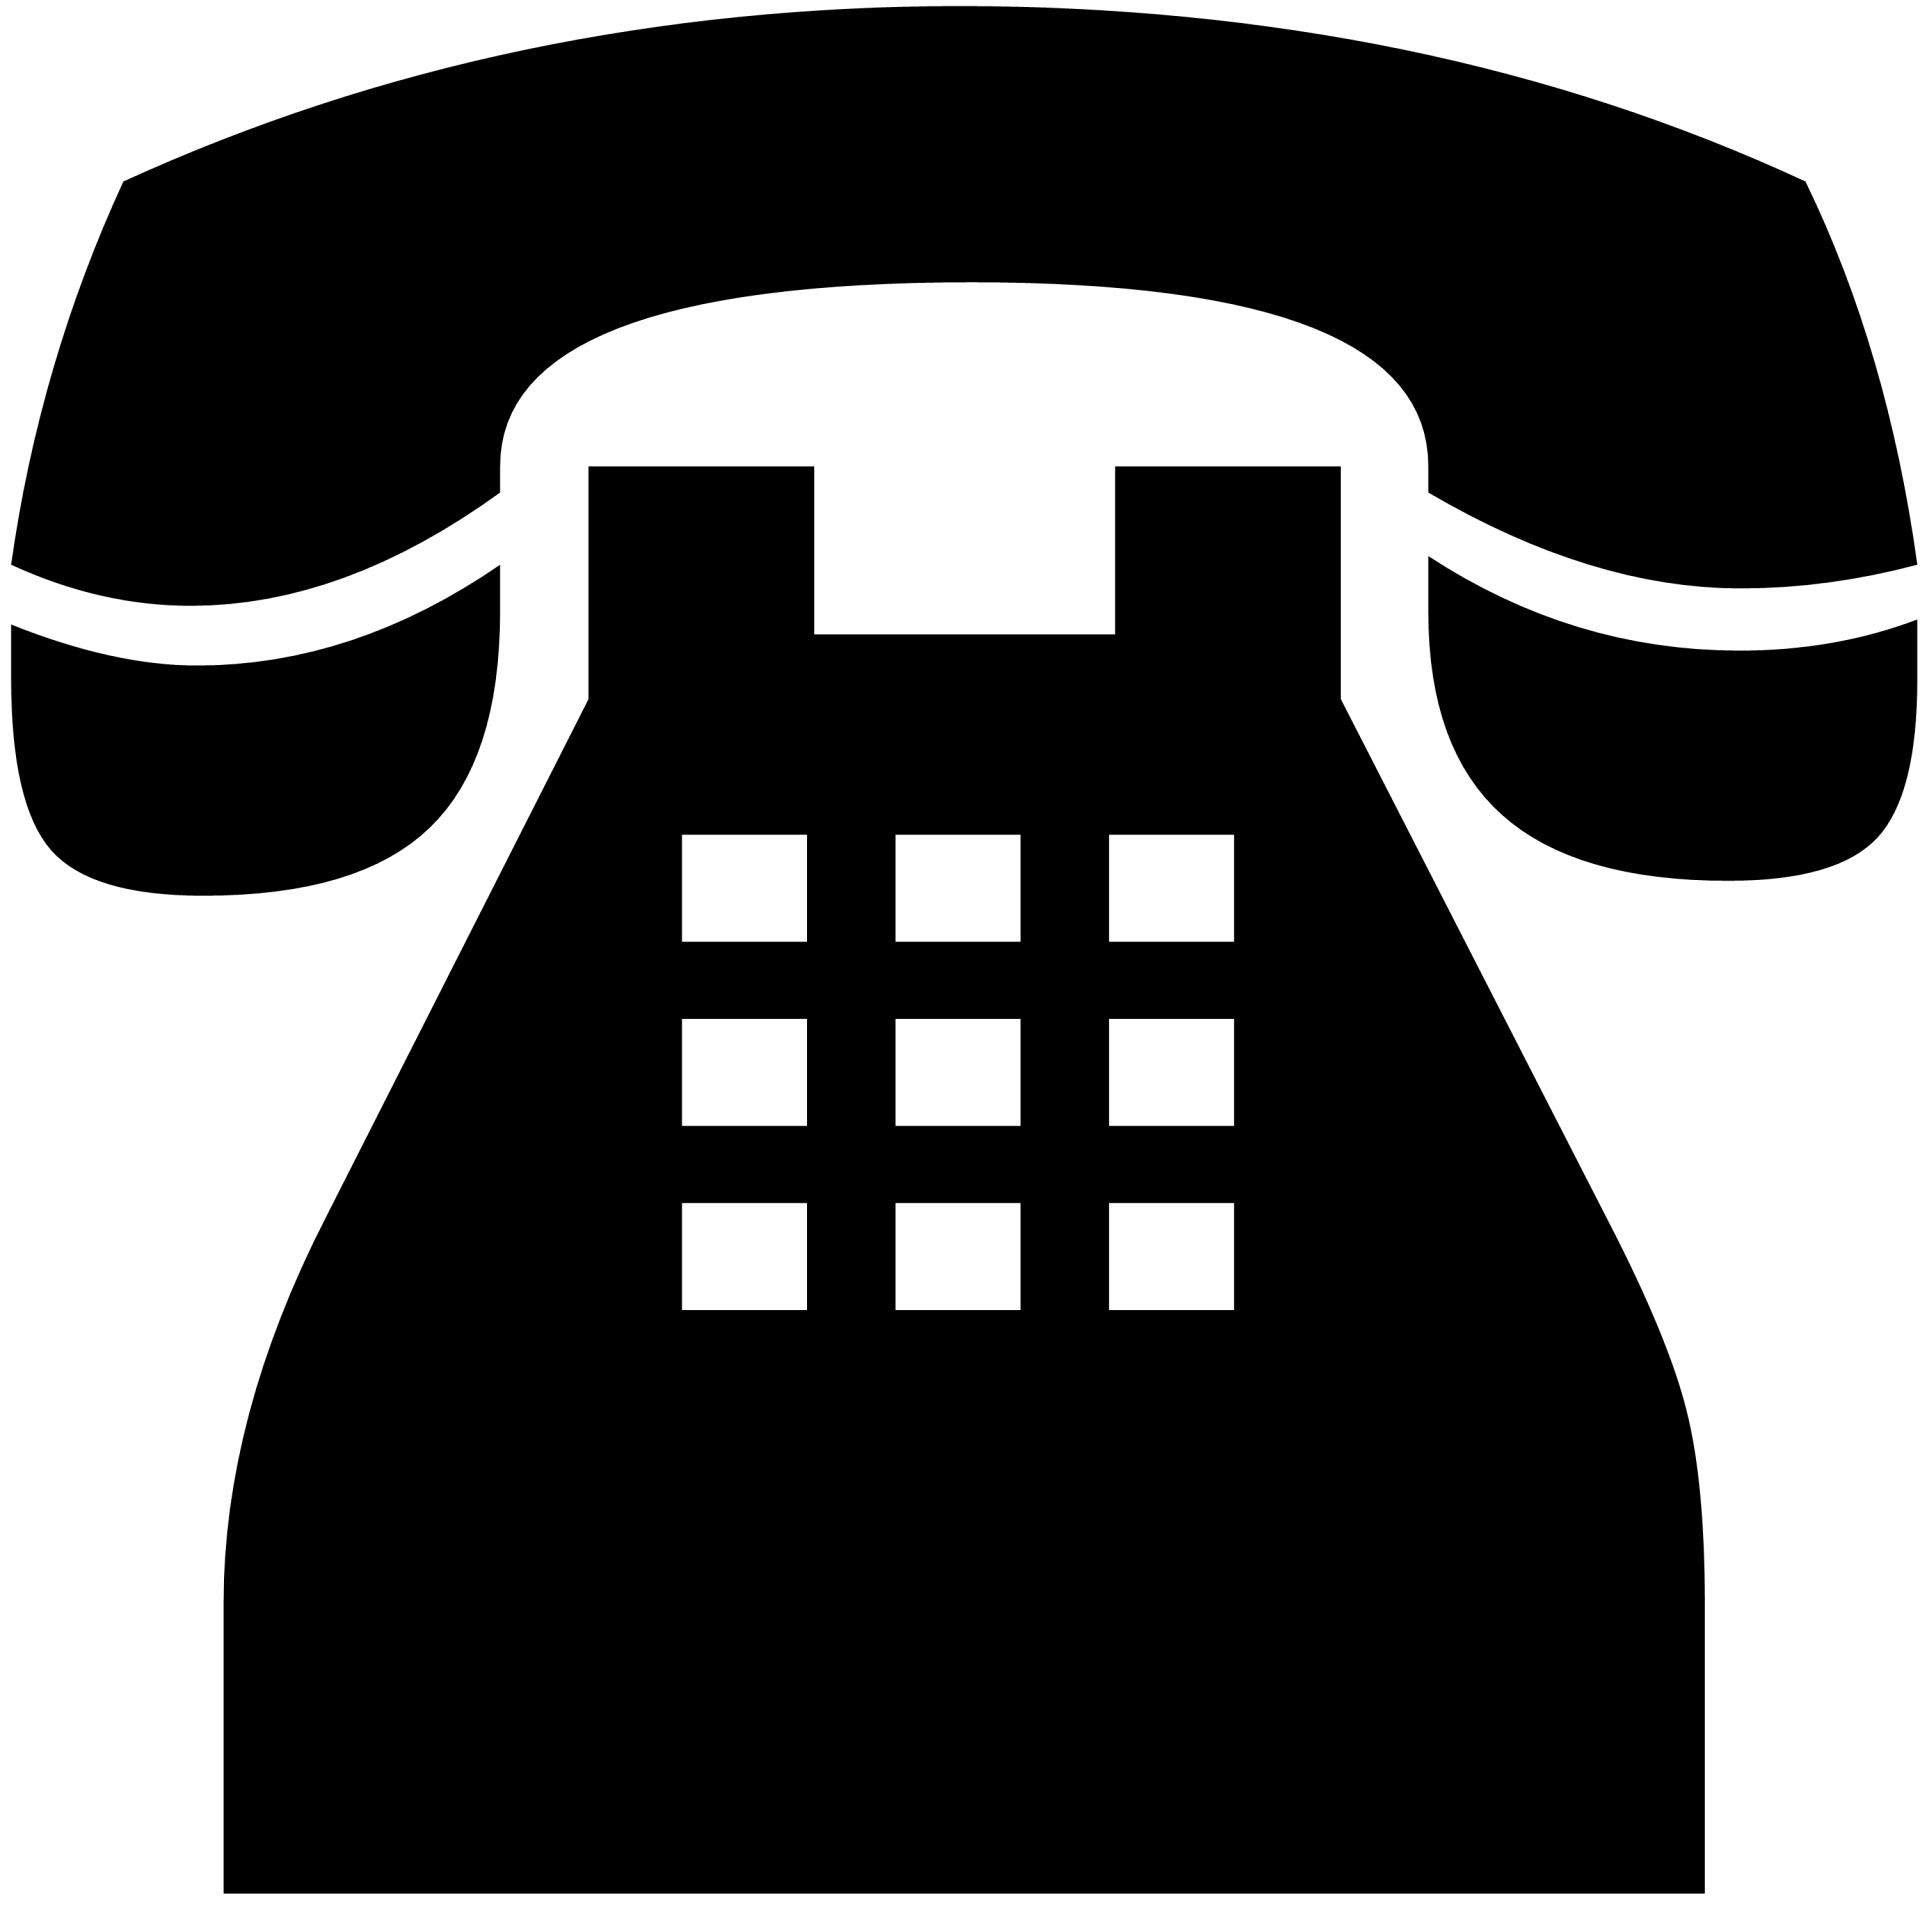 Telephone clipart silhouette #10